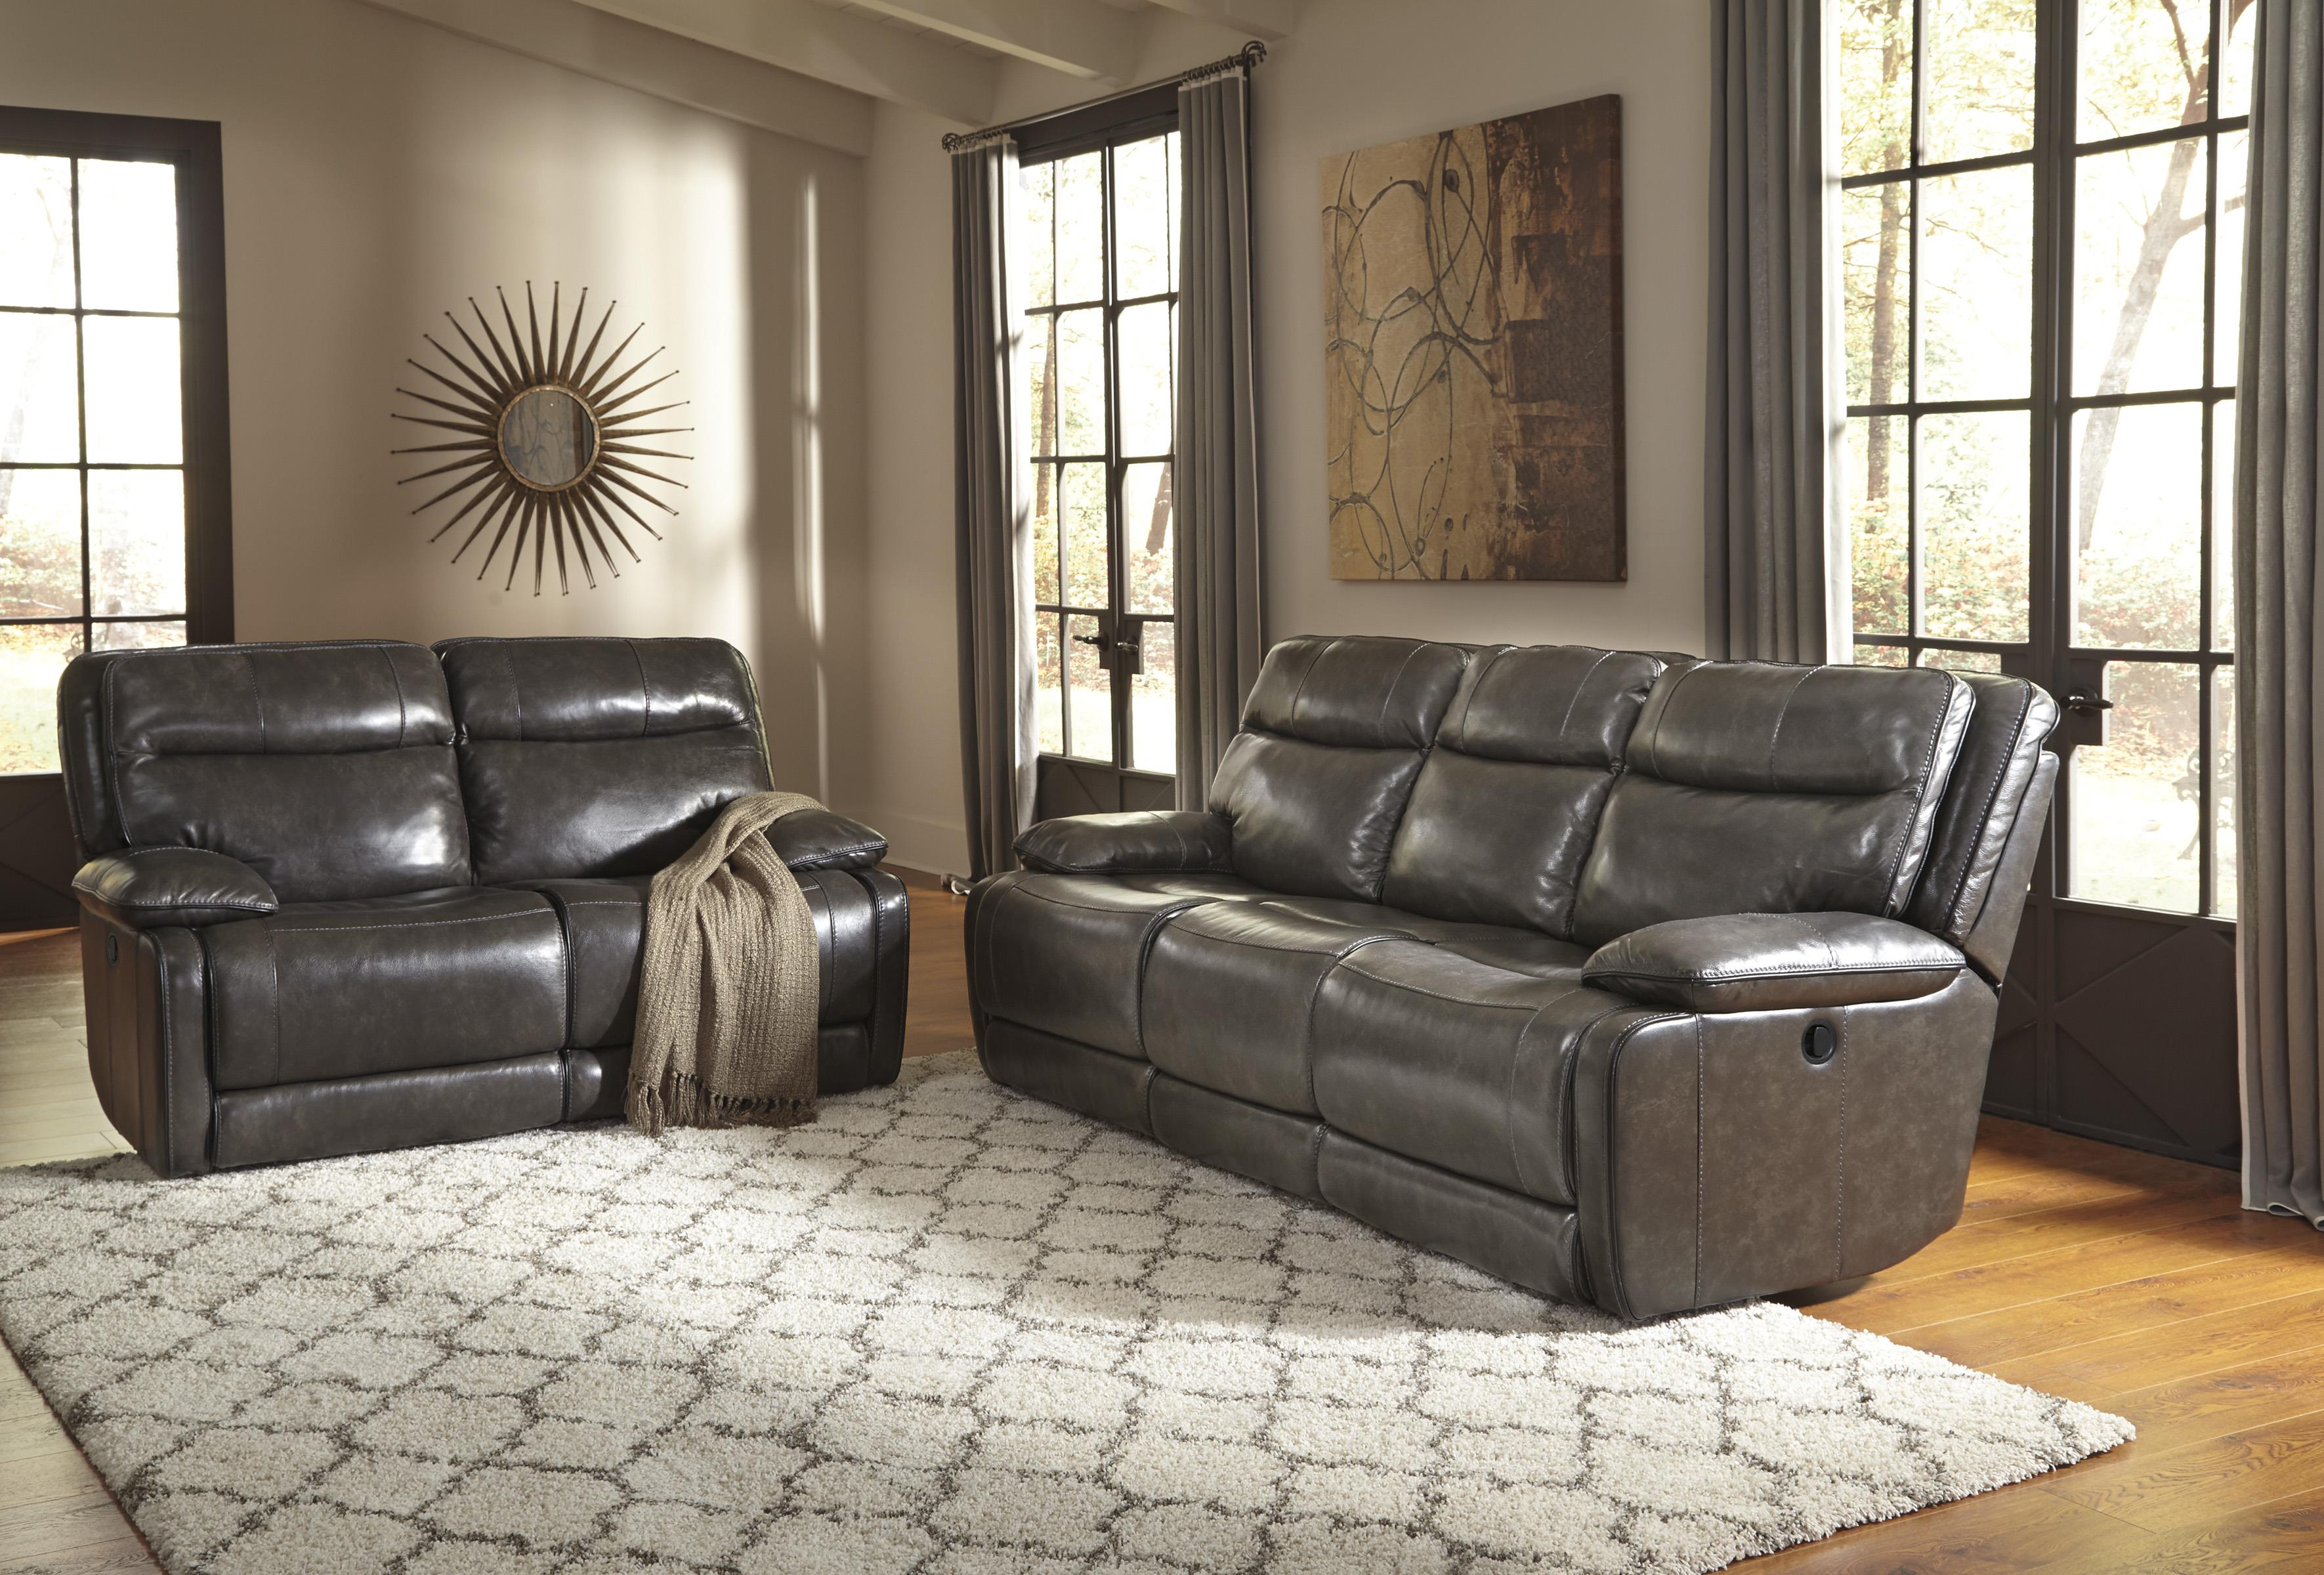 Signature Design by Ashley Palladum Reclining Living Room Group - Item Number: U72601 Living Room Group 1